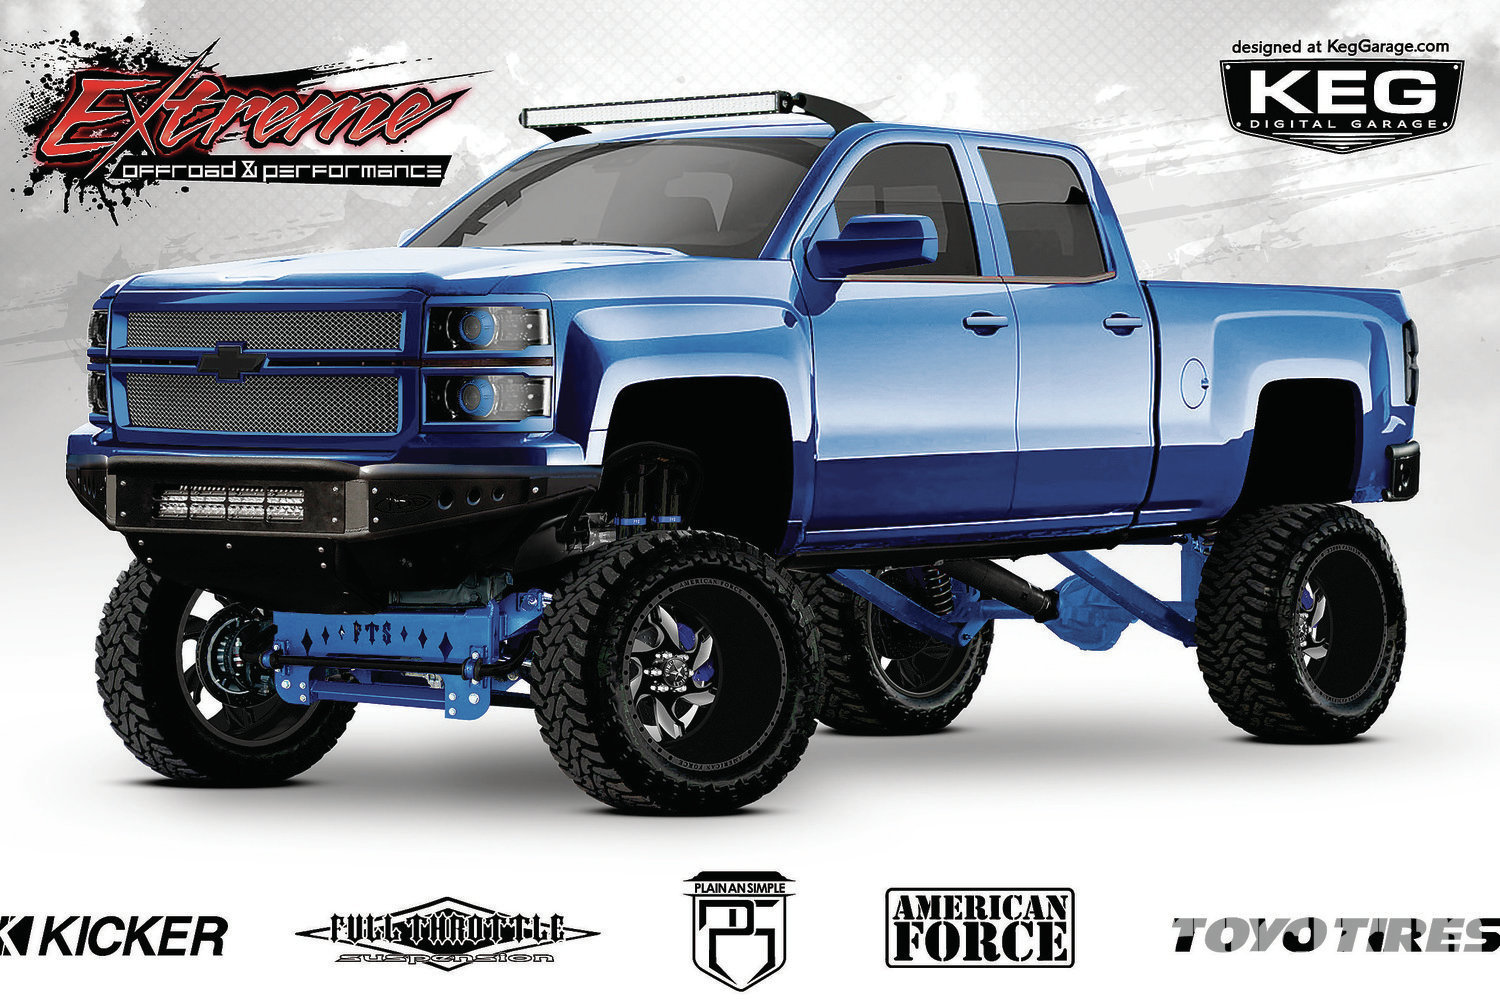 2004 Chevy Silverado For Sale >> Lifted Chevy Truck Wallpapers - WallpaperSafari